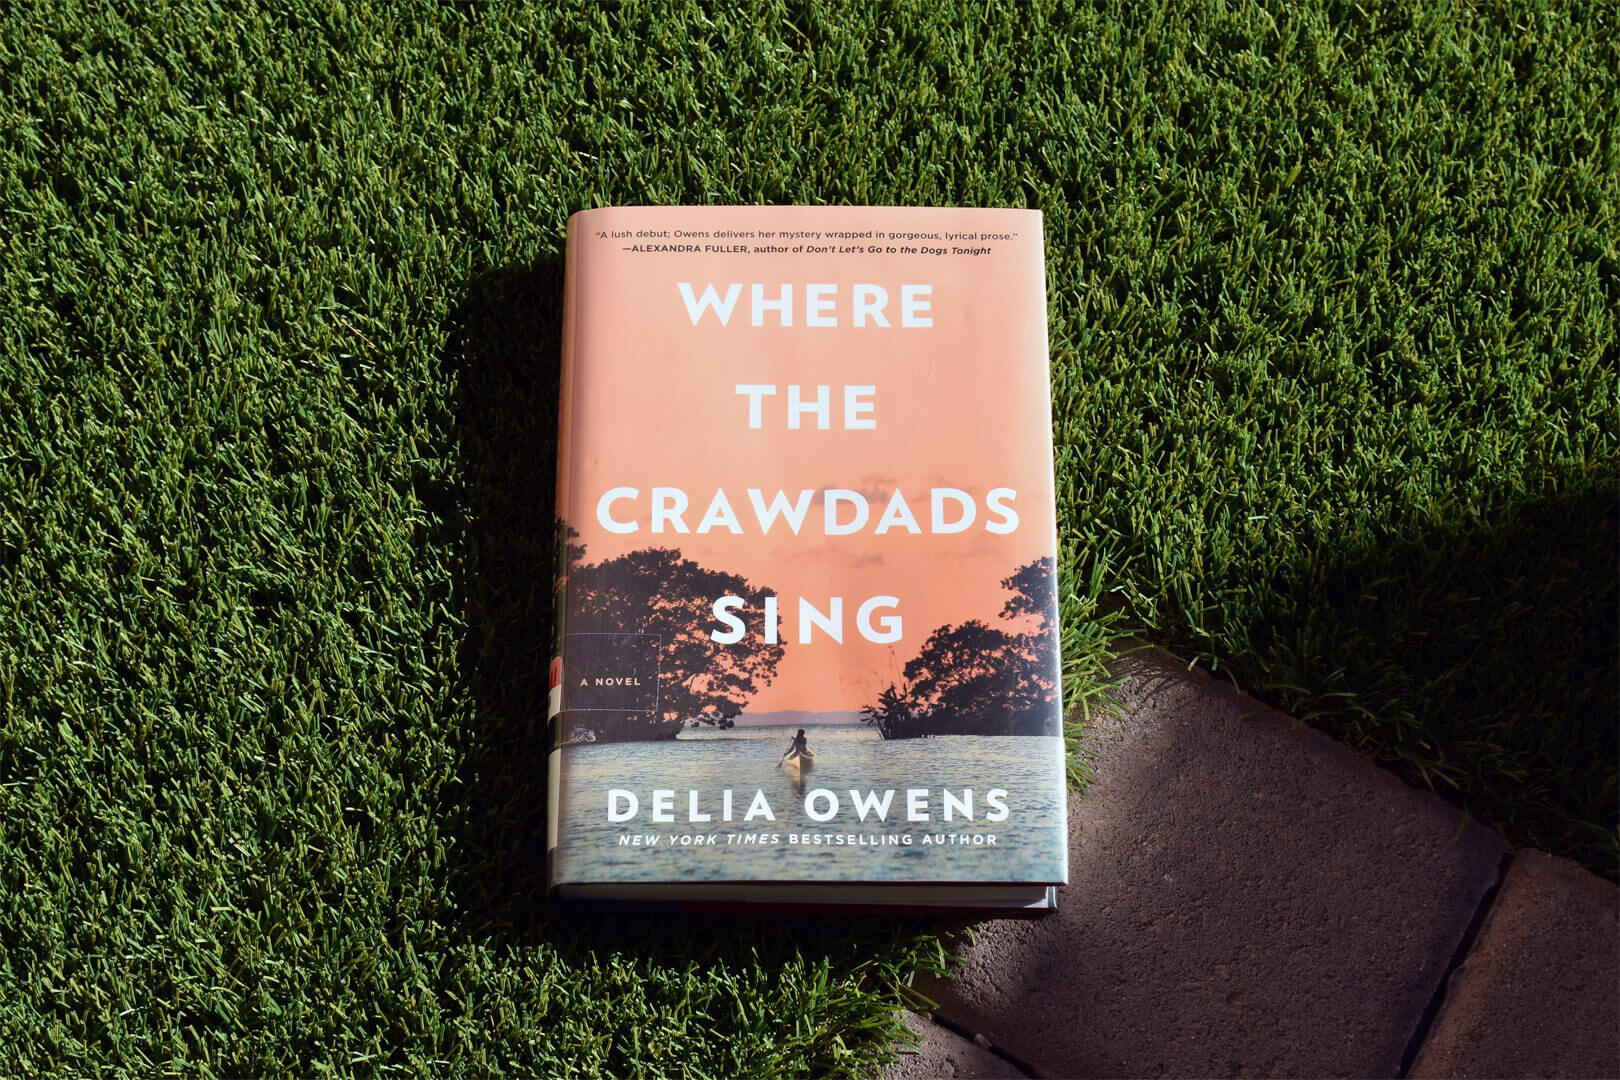 Where The Crawdads Sing Preview - Book Club Chat